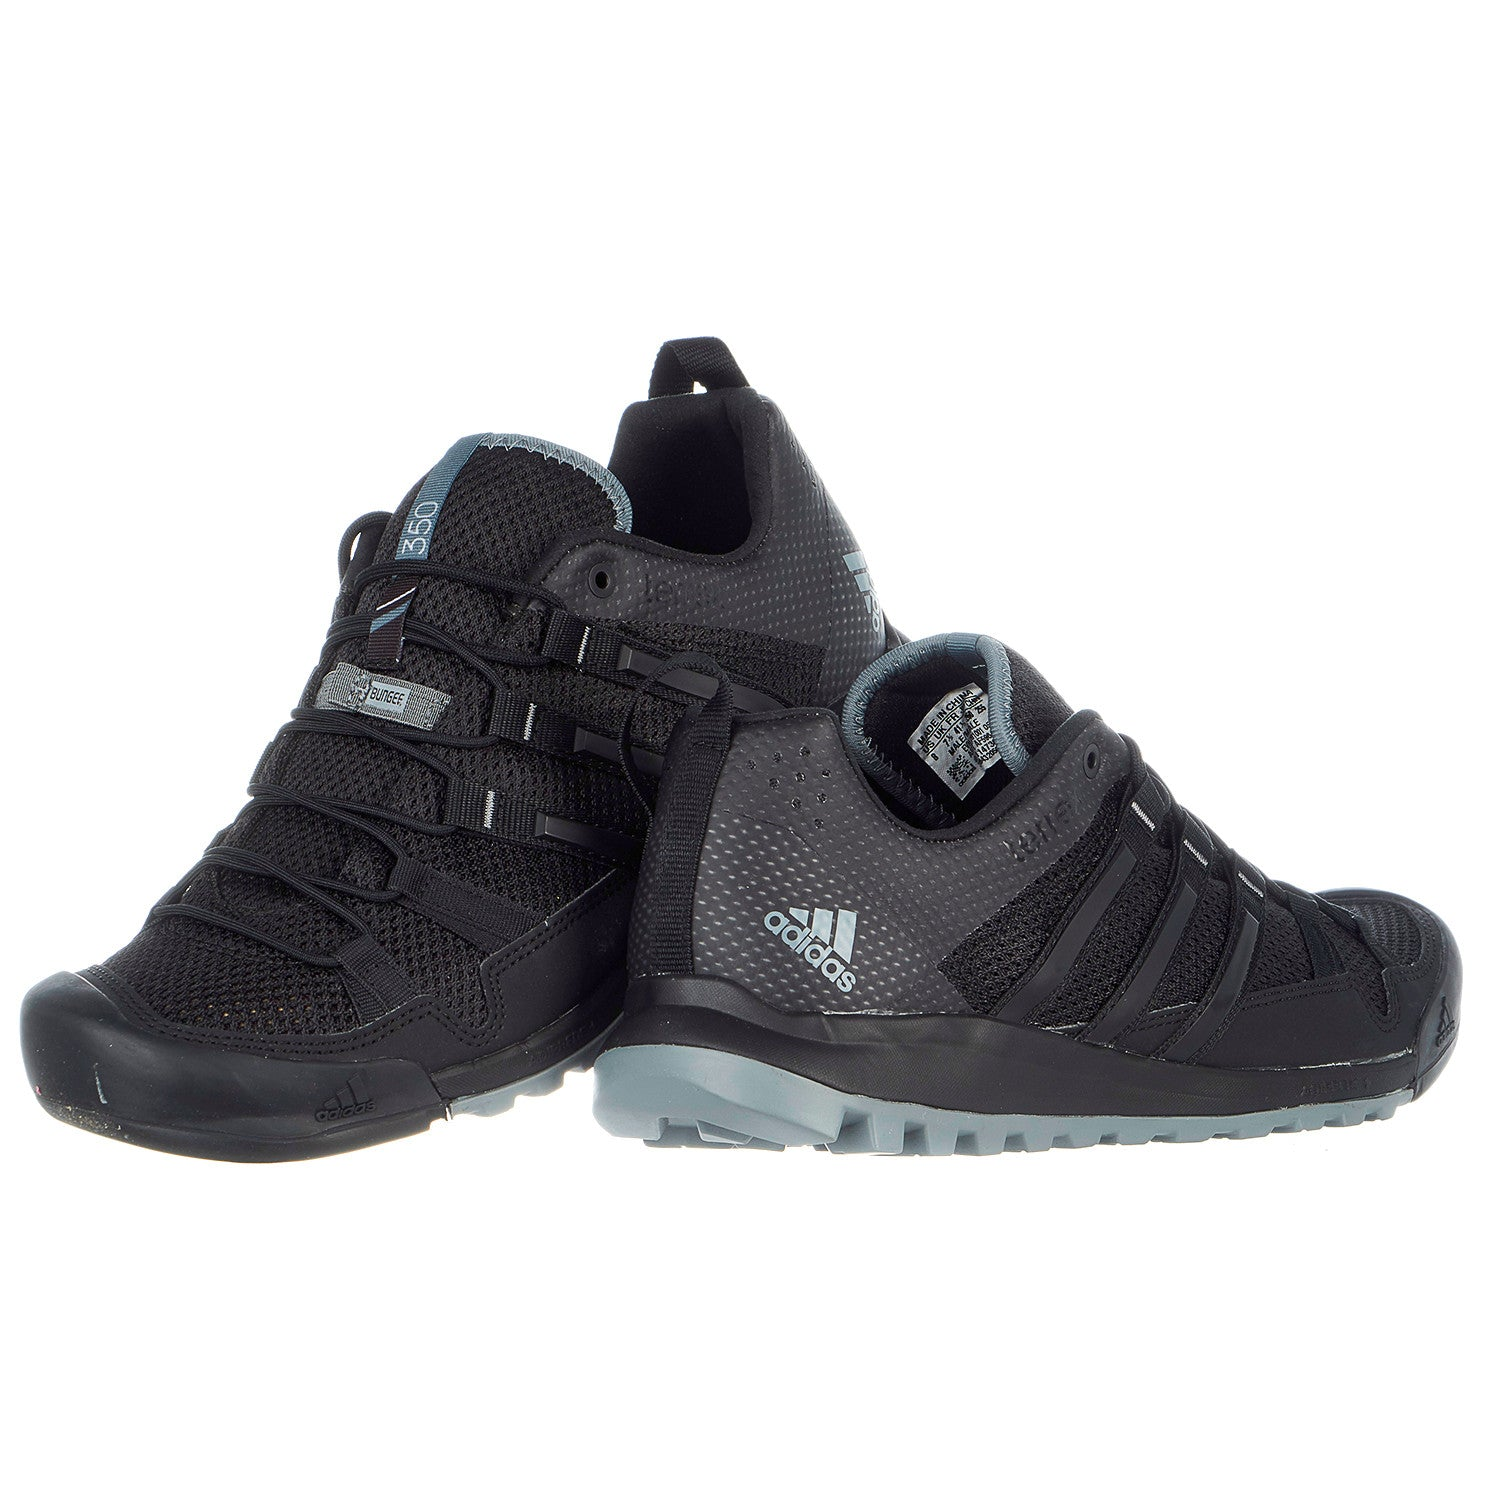 grand choix de 3d9ce f9285 adidas Terrex Solo Cross Trainer Shoes - Men's